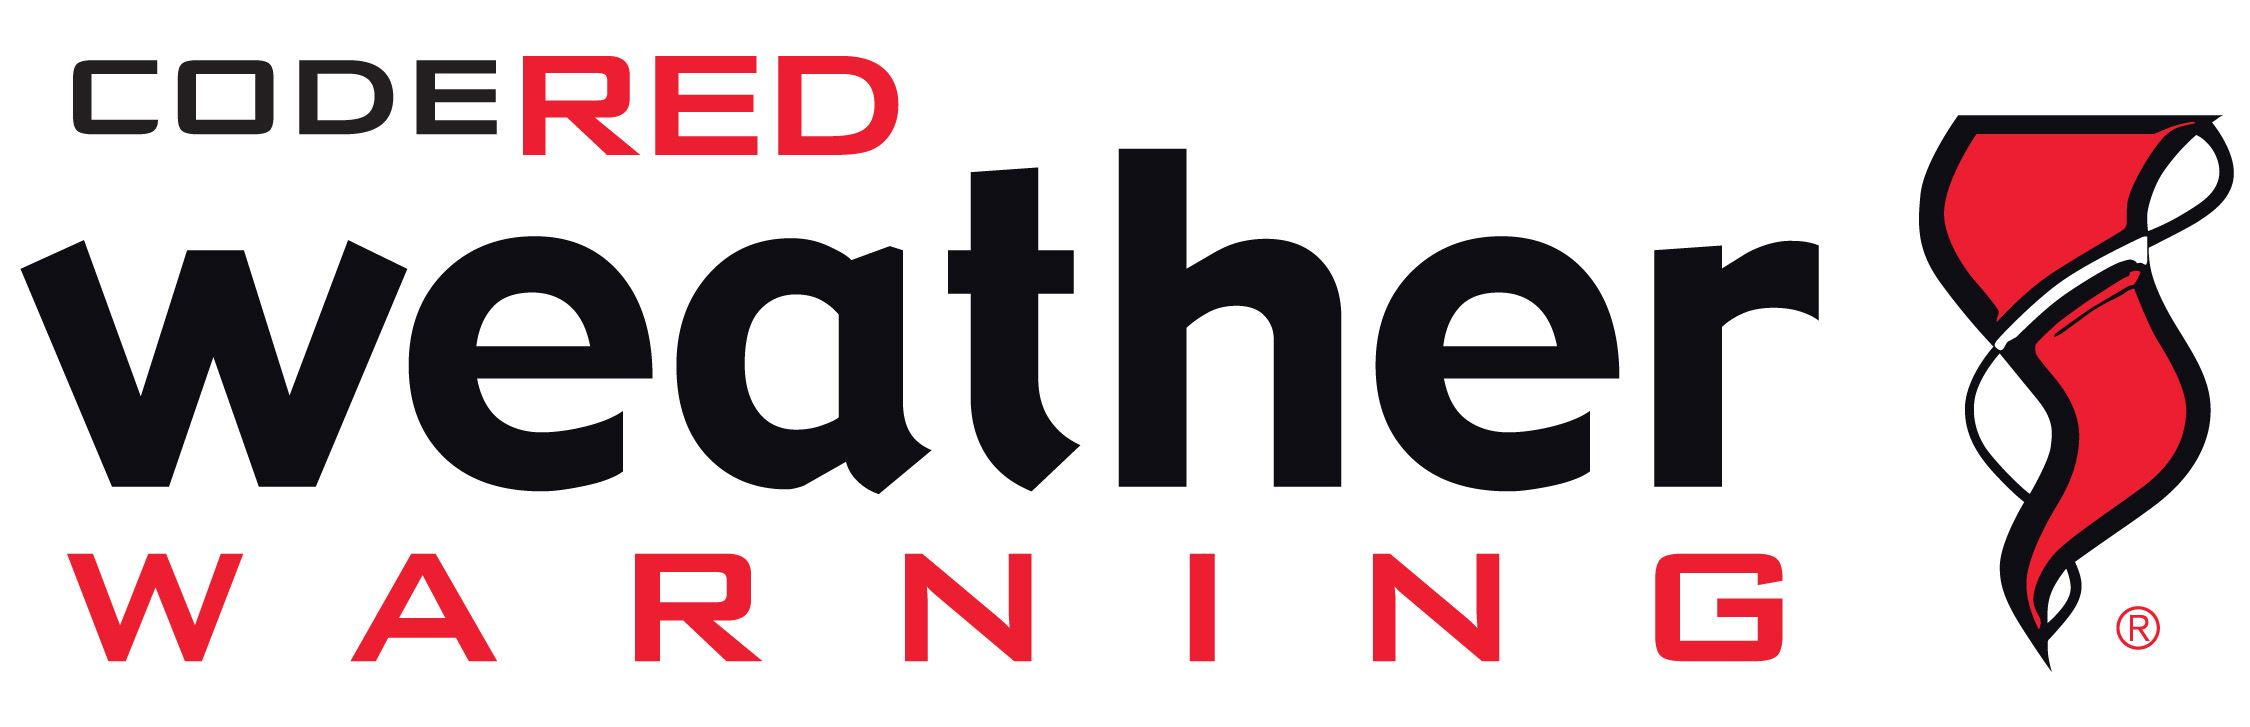 Code Red Weather Warning